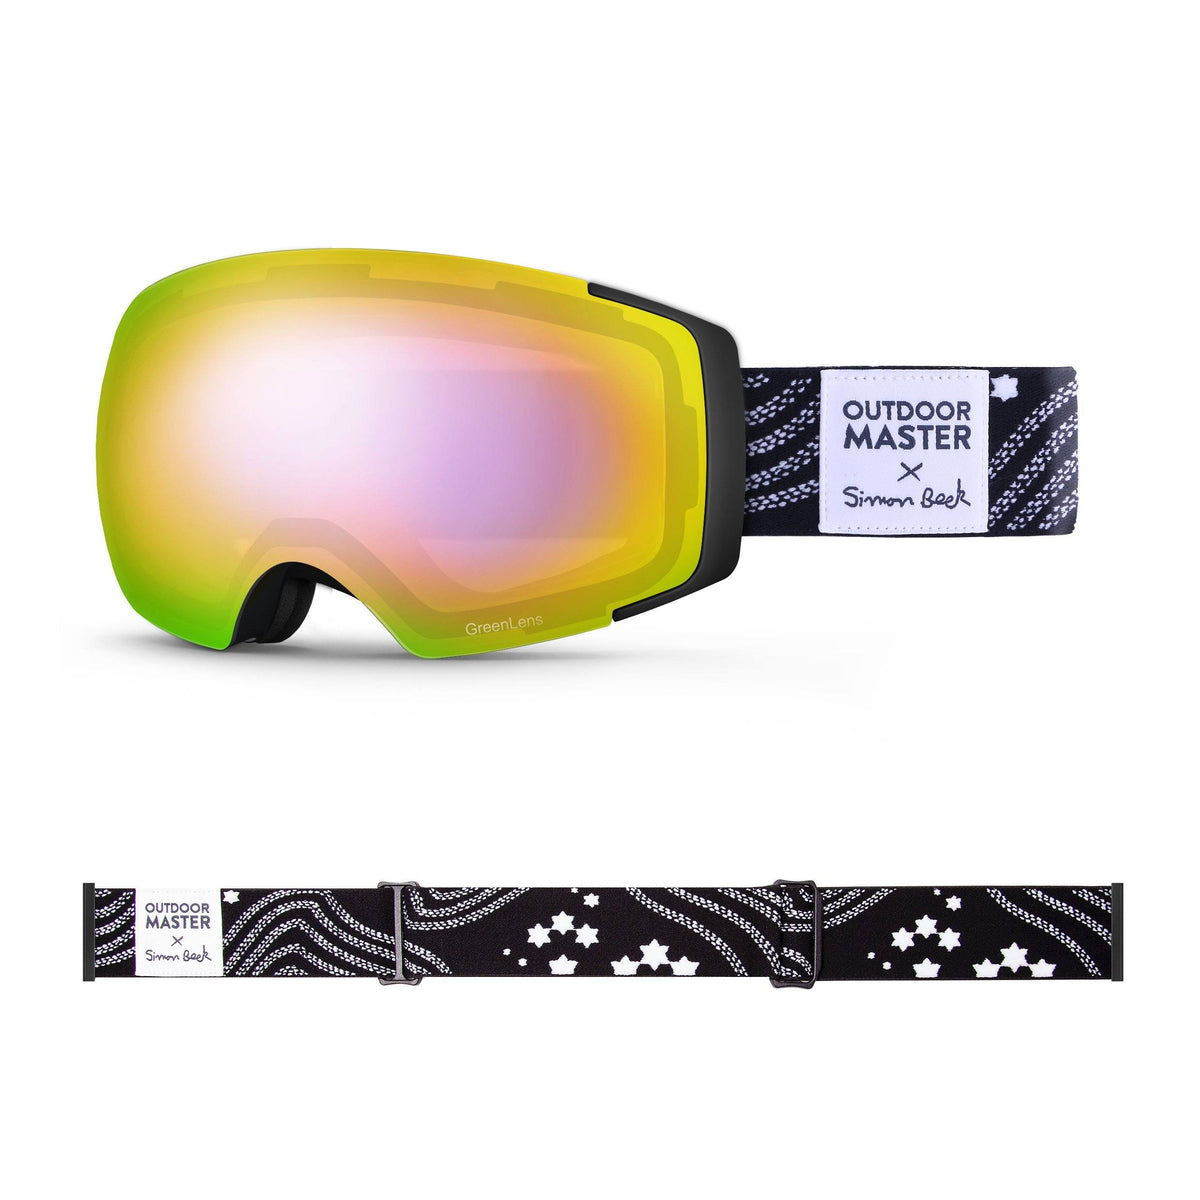 OutdoorMaster x Simon Beck Ski Goggles Pro Series - Snowshoeing Art Limited Edition OutdoorMaster GreenLens VLT 45% TAC Purple with REVO Red Polarized Star Road-Black